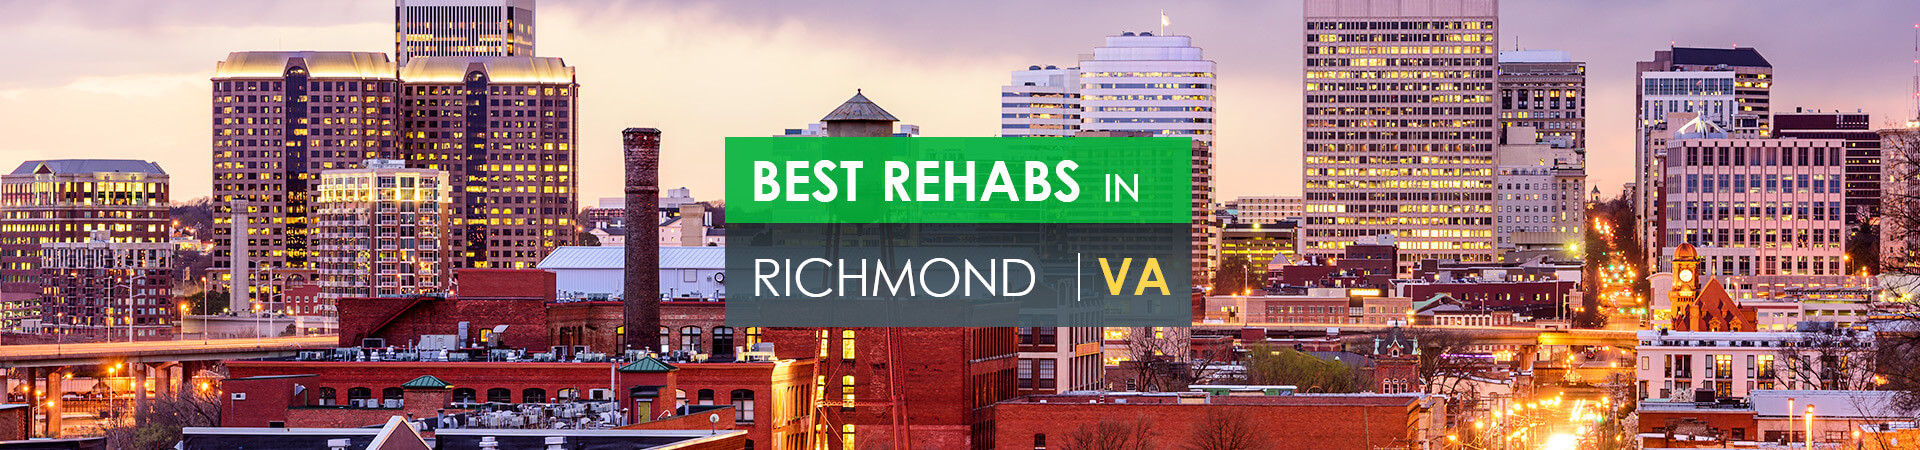 Best rehabs in Richmond, VA